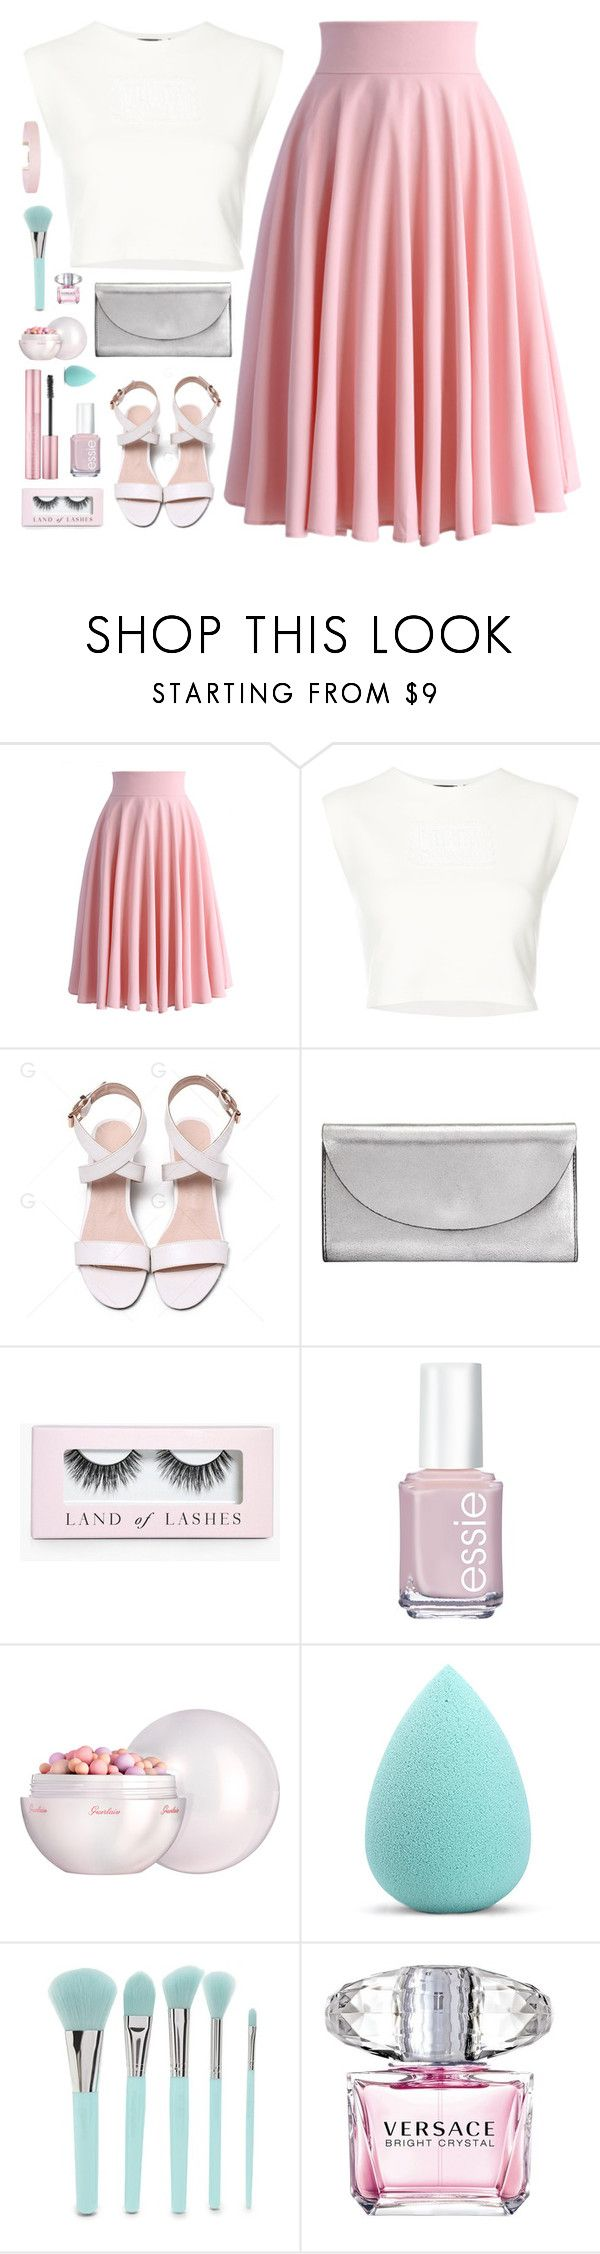 """""""Here we go"""" by cocochaneljr ❤ liked on Polyvore featuring Chicwish, Puma, Kin by John Lewis, Boohoo, Guerlain, My Makeup Brush Set, Forever 21, Versace and Humble Chic"""